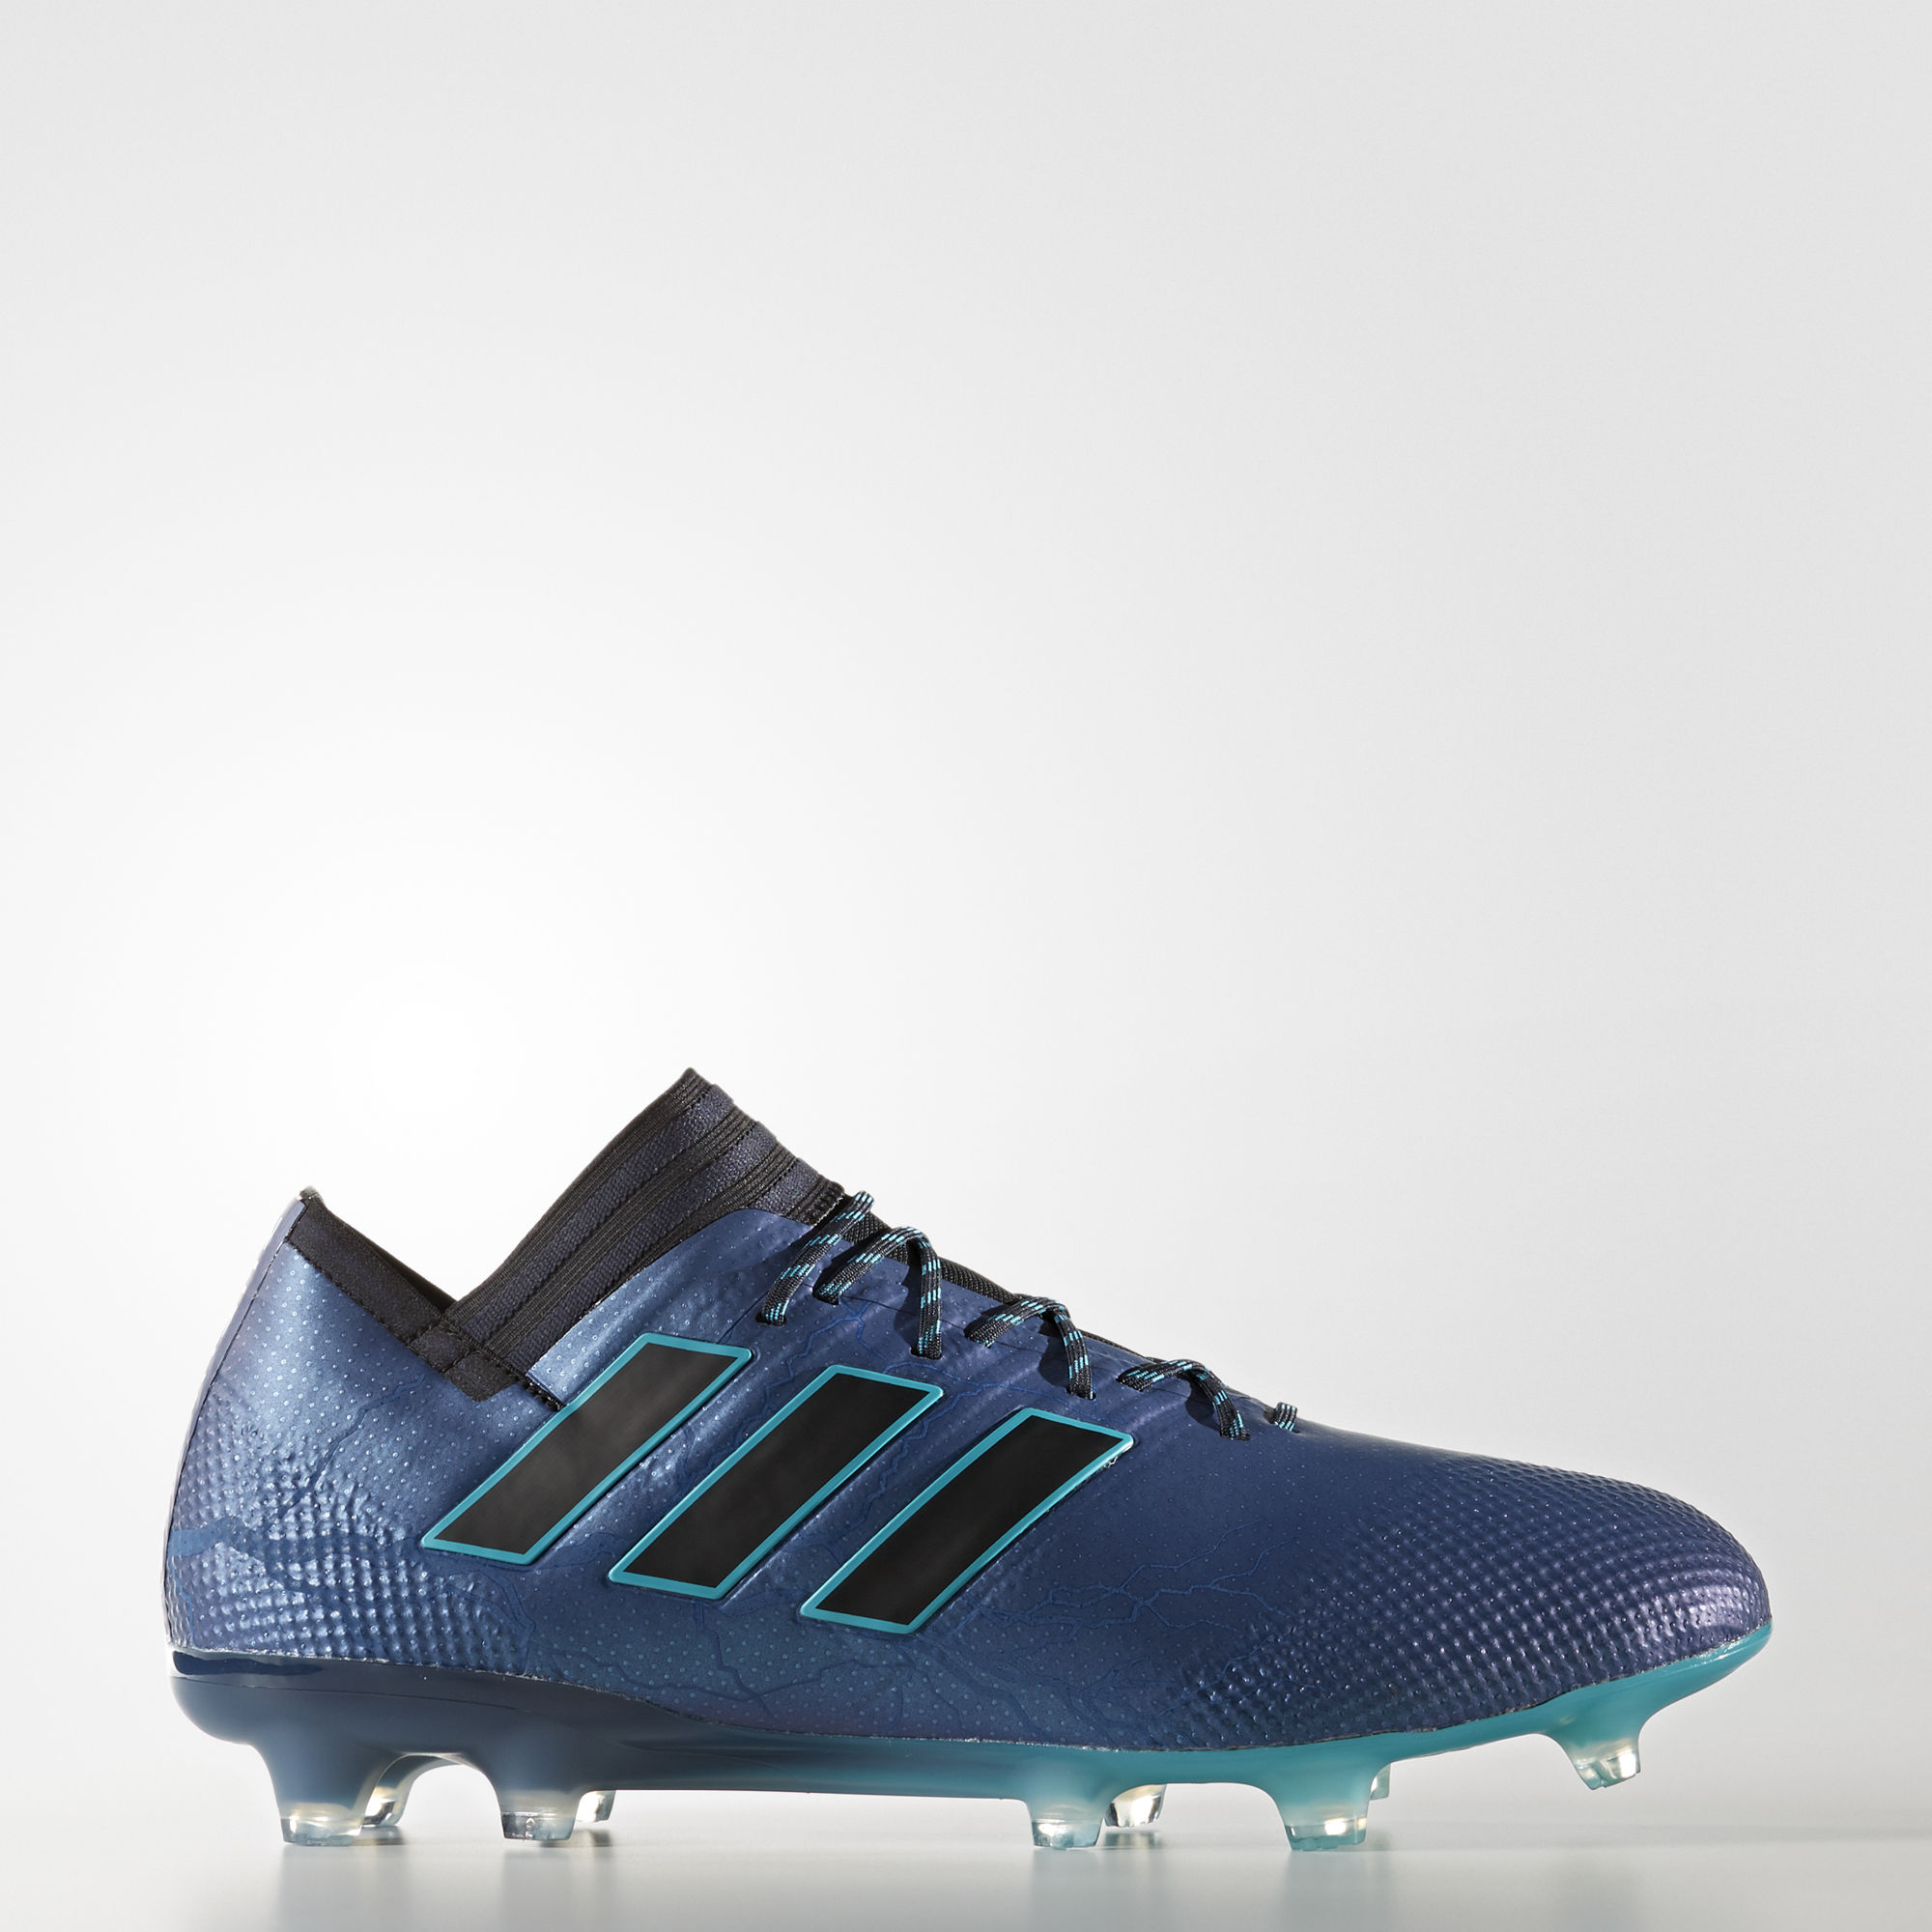 690e0bf40 Click to enlarge image  adidas_nemeziz_17_1_fg_thunder_storm_energy_blue_core_black_a.jpg ...